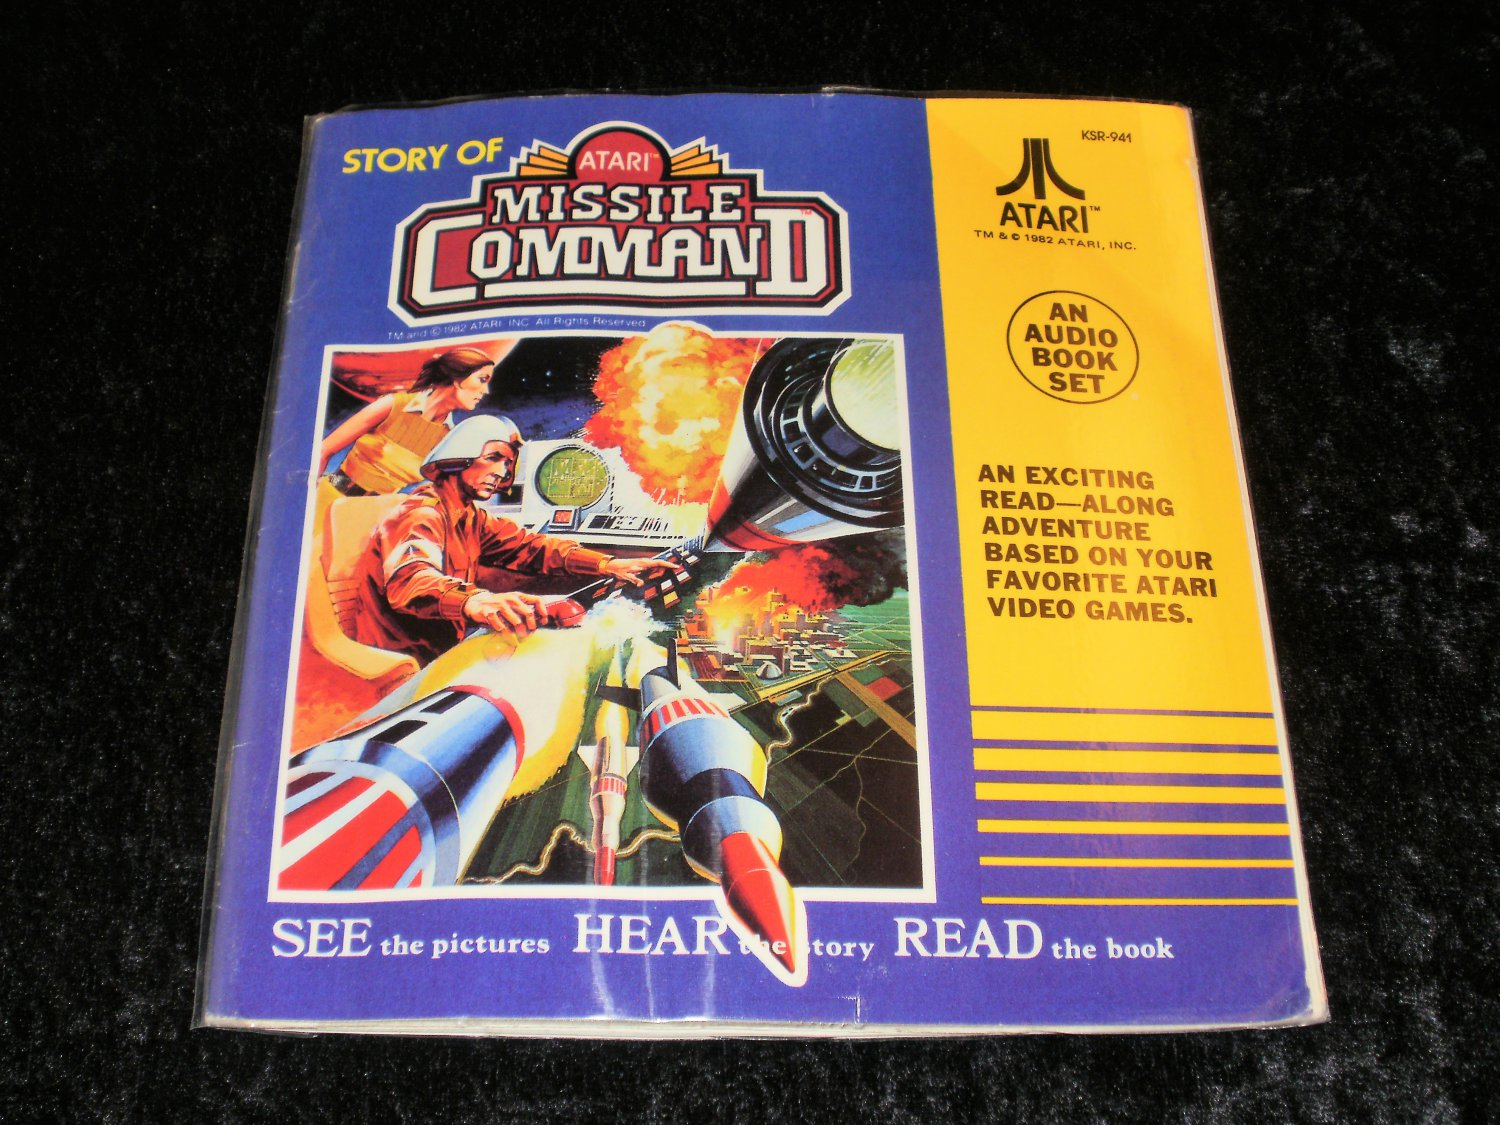 Story of Atari Missile Command - 33 1/3 RPM Record - Kid Stuff Records 1982 - Laminated